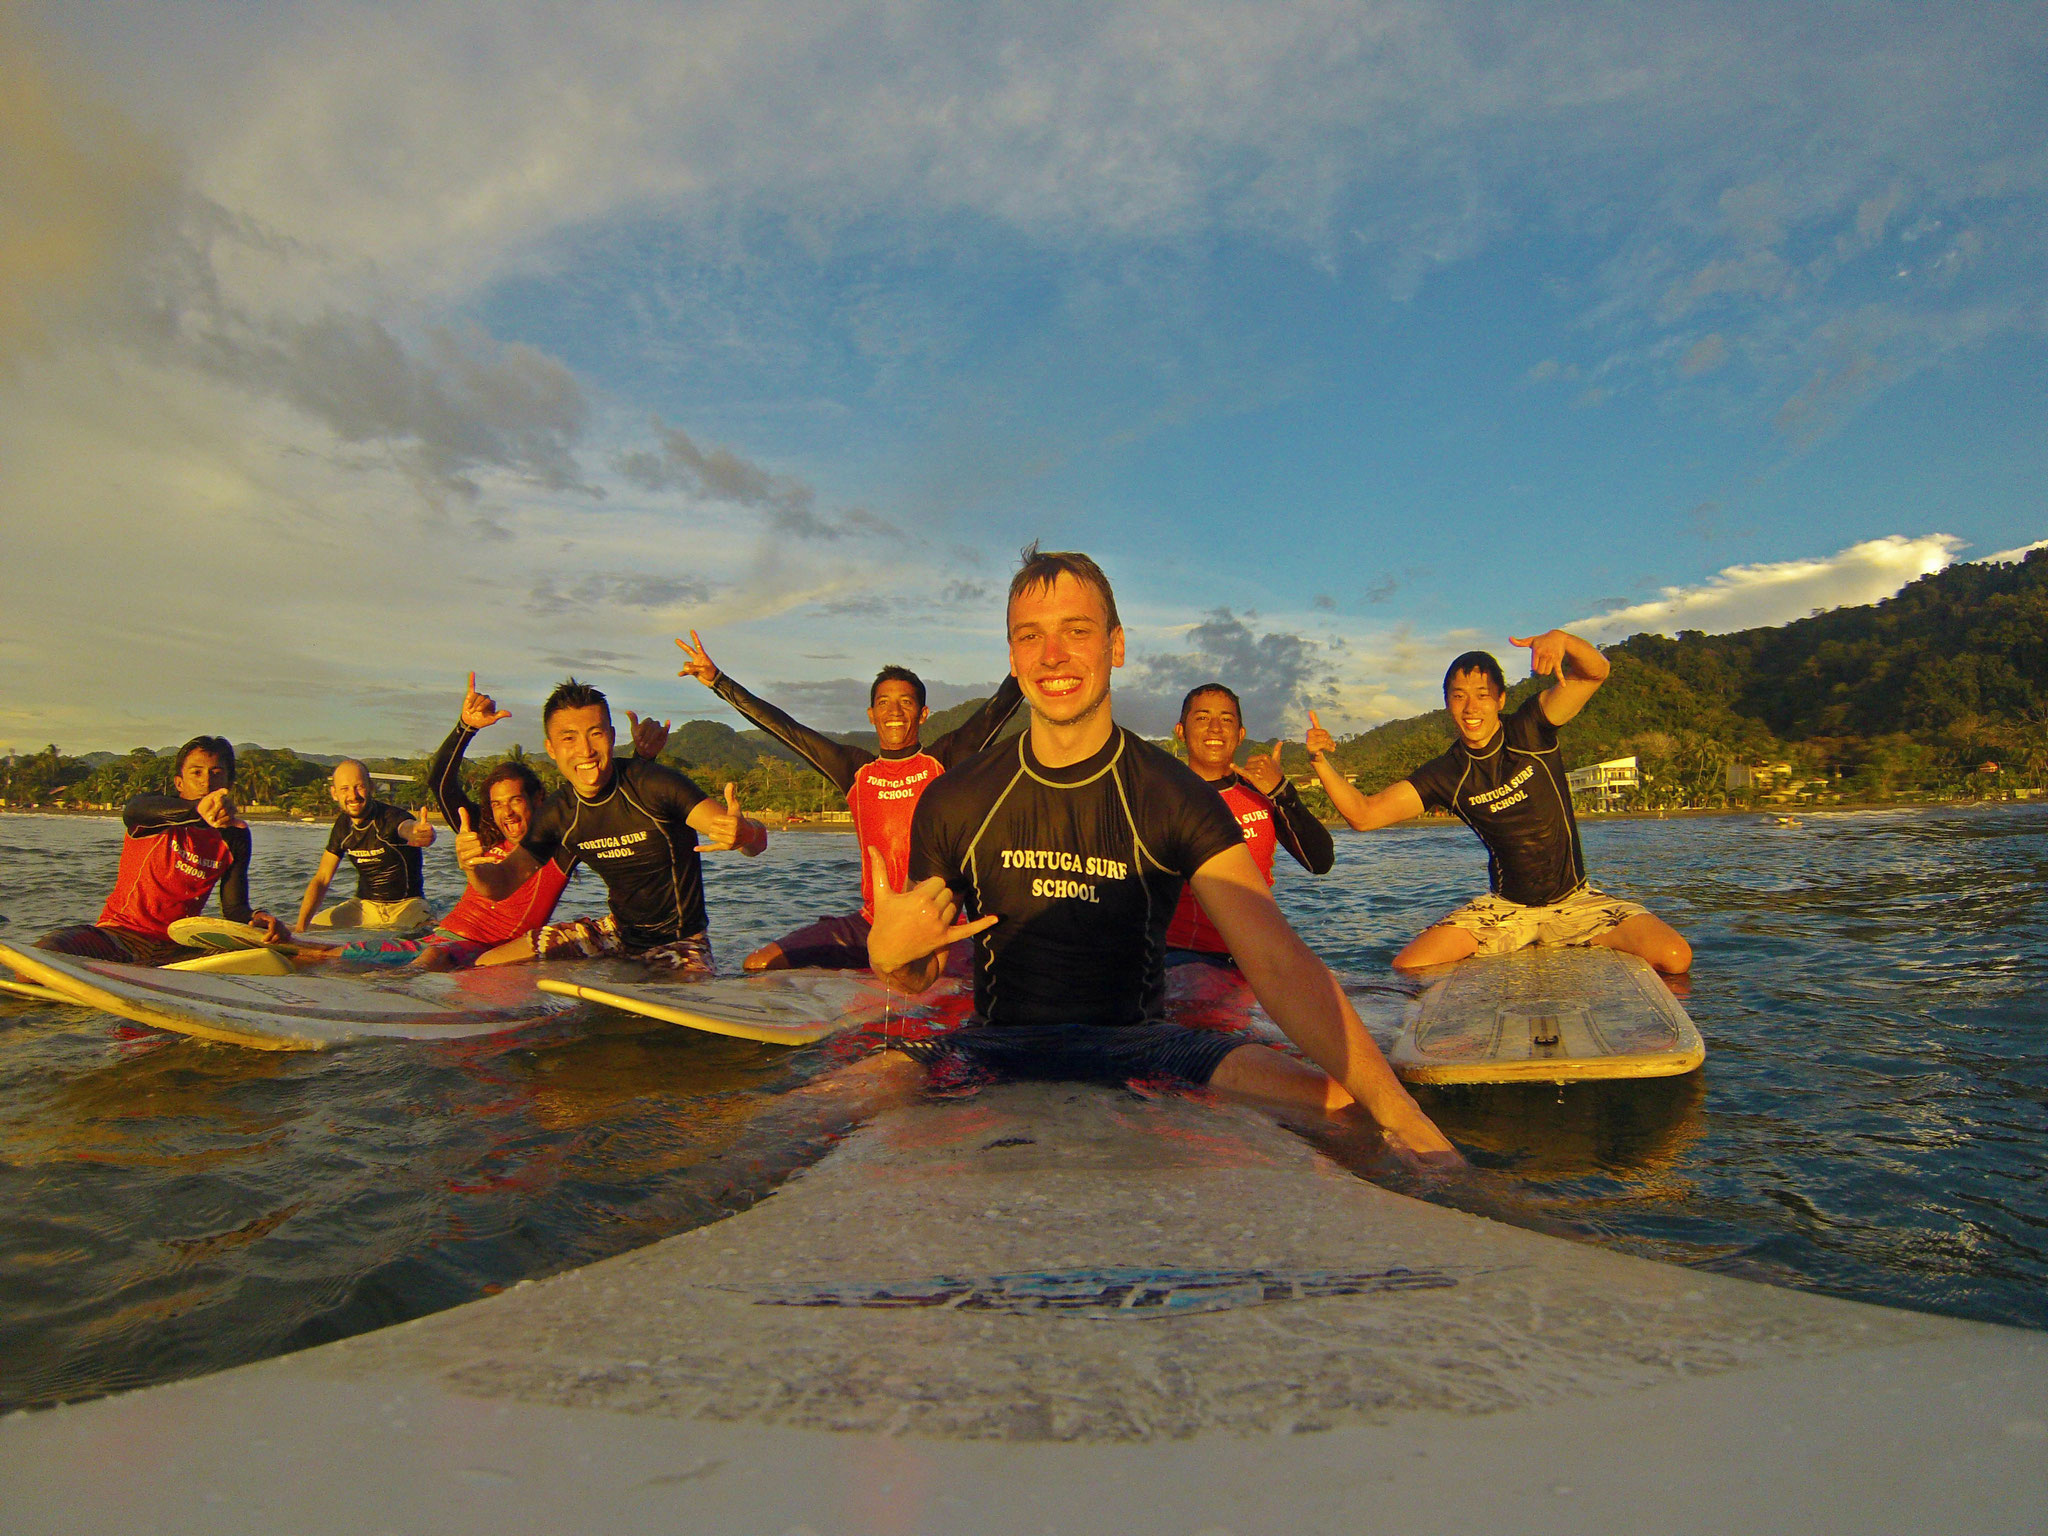 Surf camp trips with friends to remember forever!